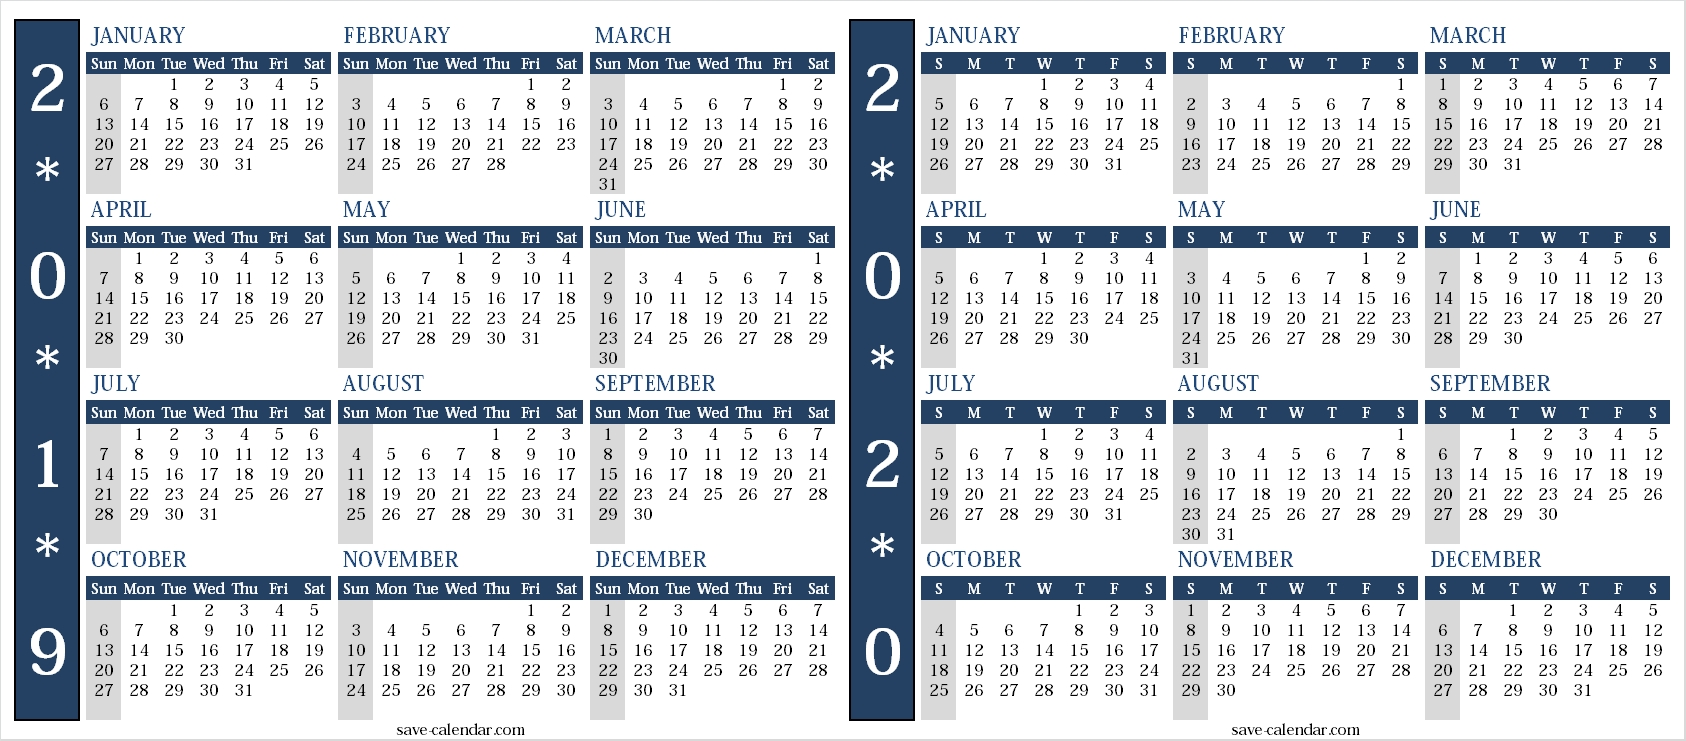 Calendar 2019 2020 Uk | Calendar Design, Templates Printable